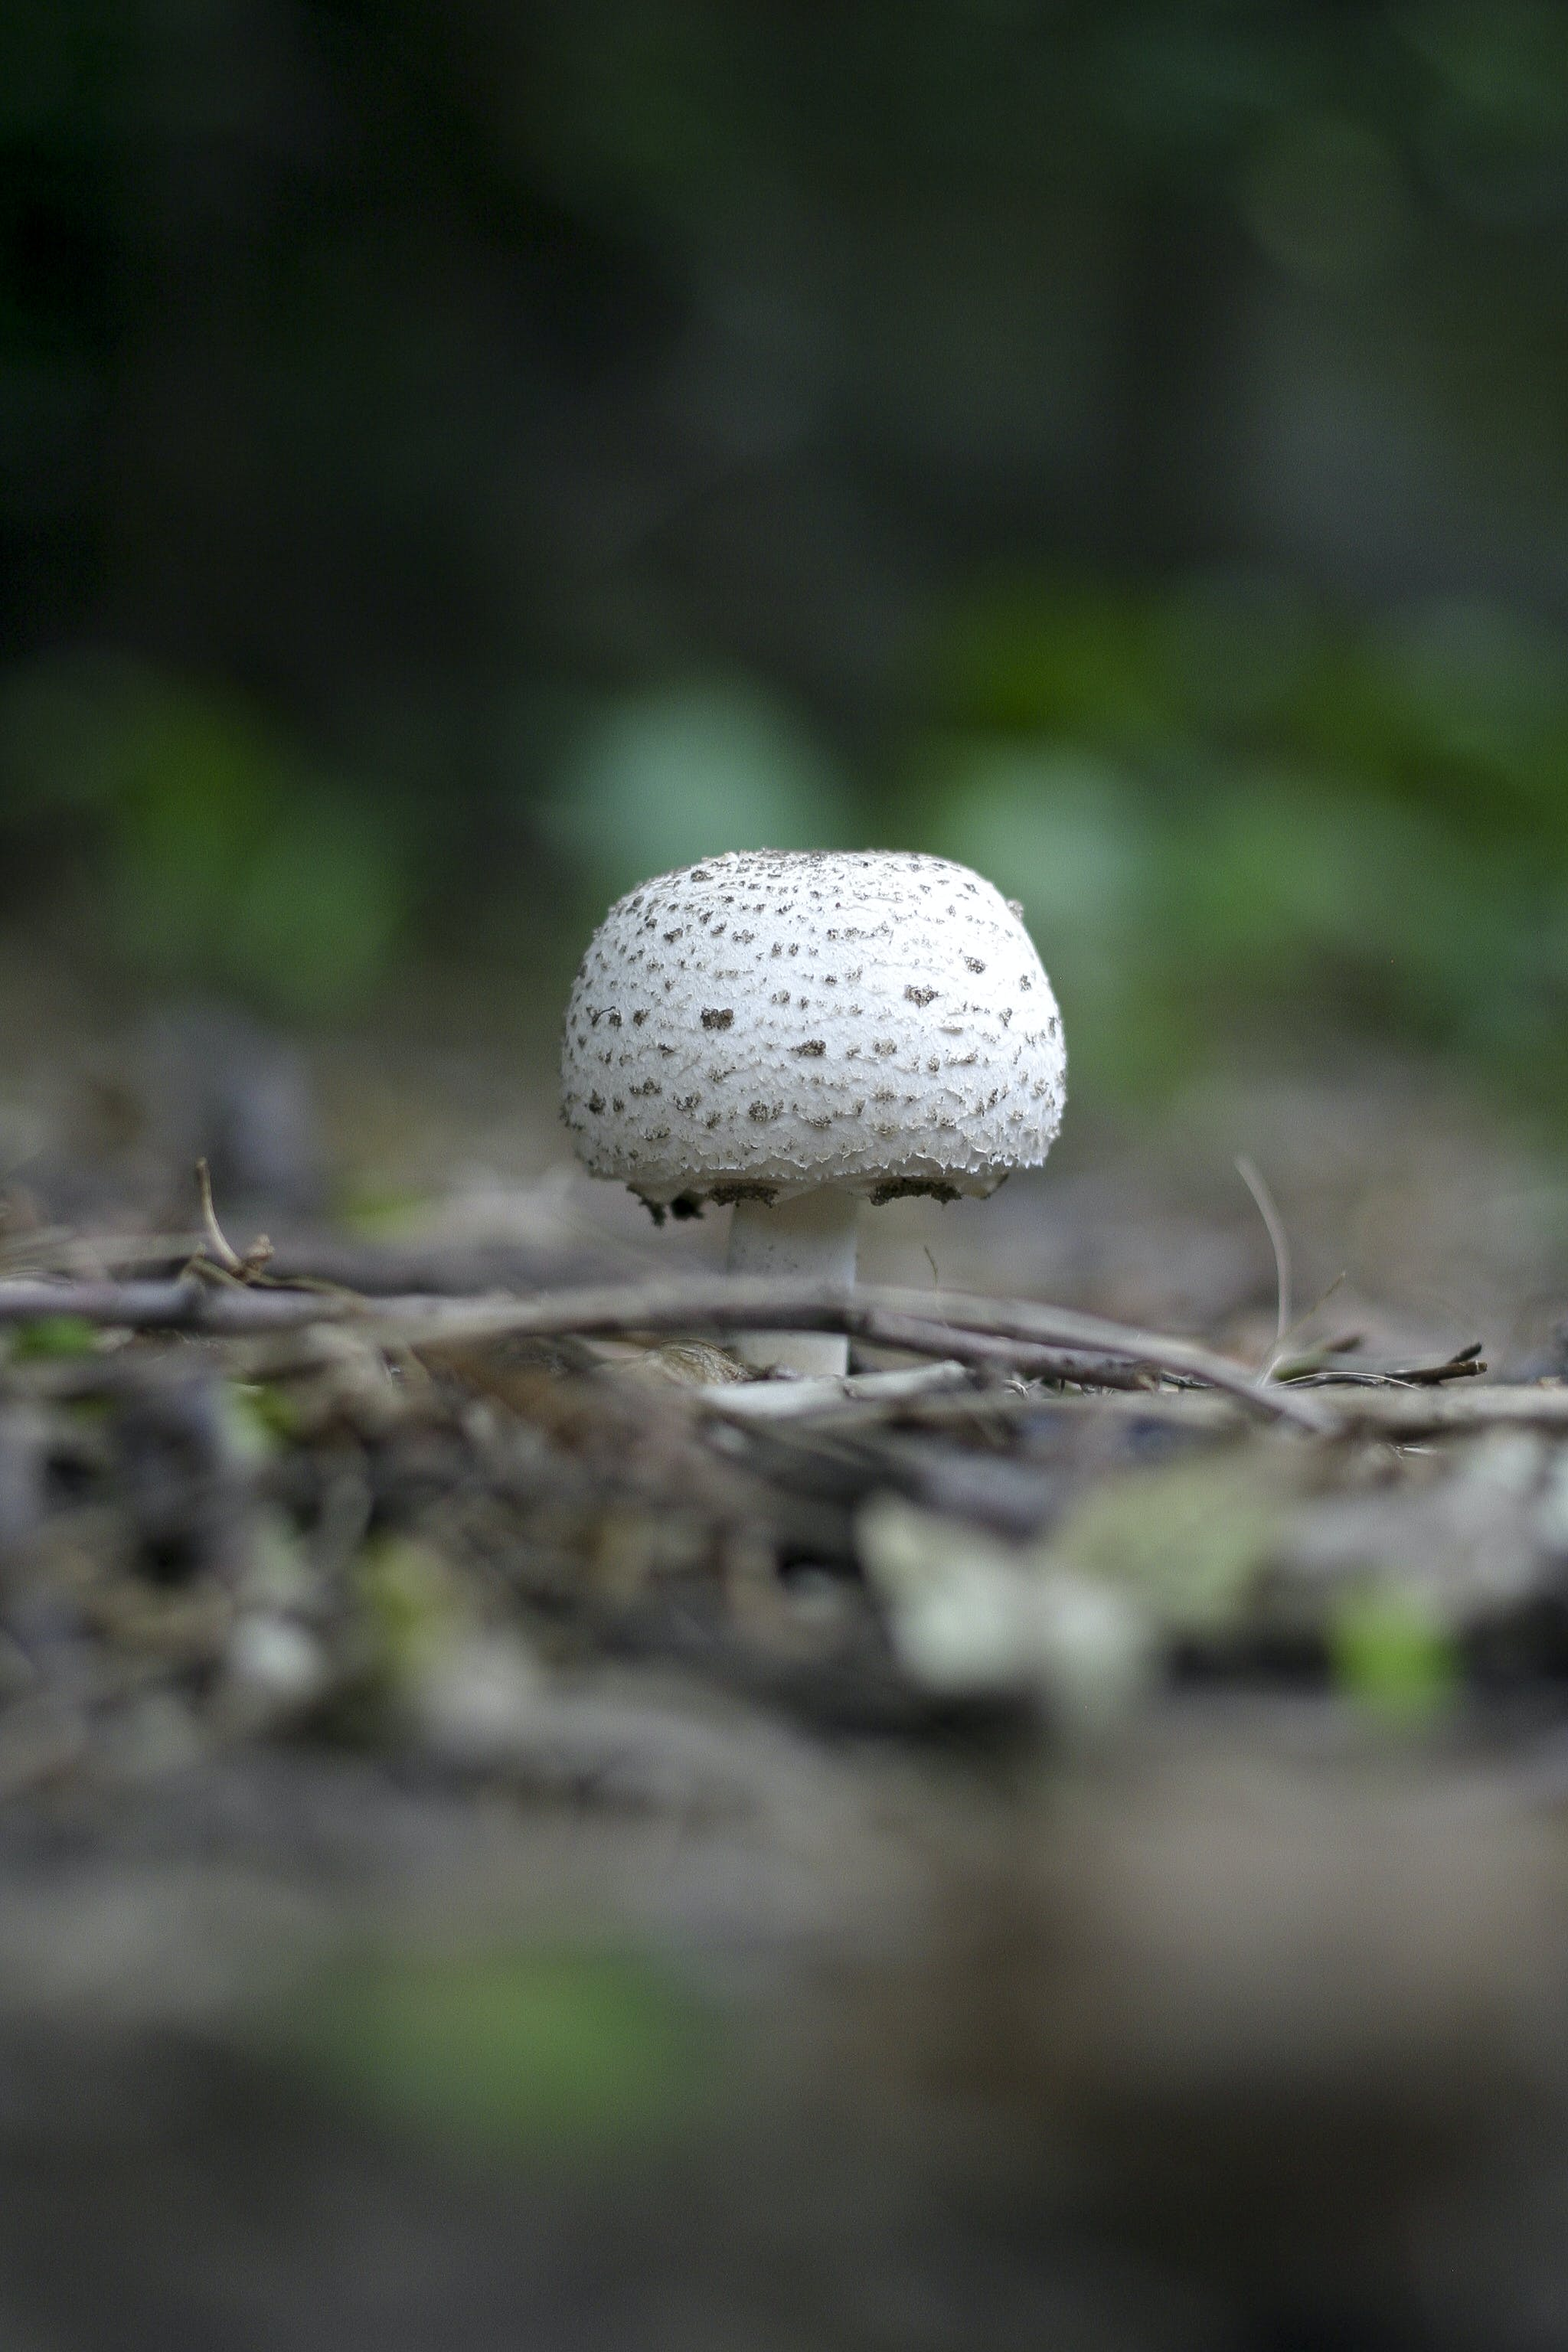 Round White and Grey Mushroom on Forest Floor